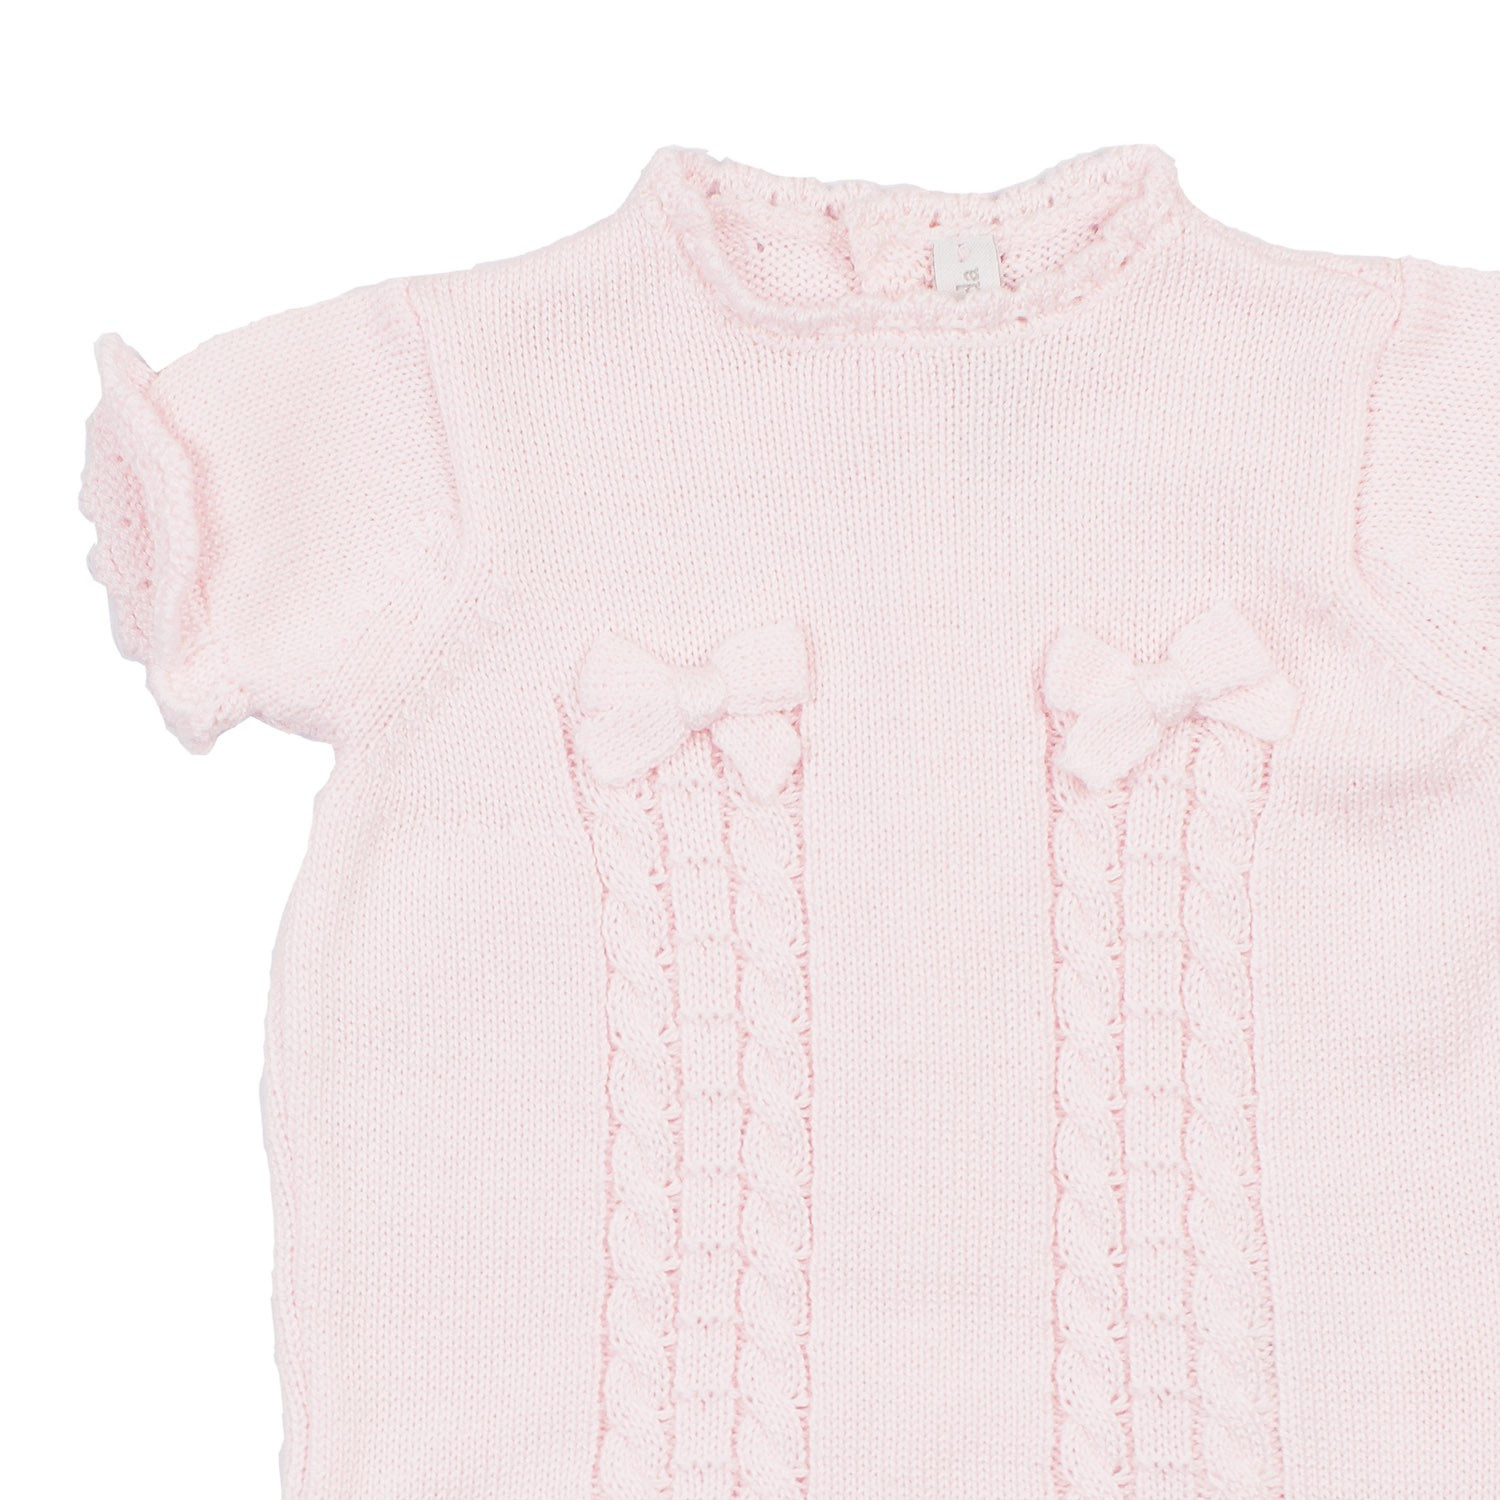 Unique Baby Pink Knitted Romper Knitted Baby Romper Of Amazing 42 Ideas Knitted Baby Romper